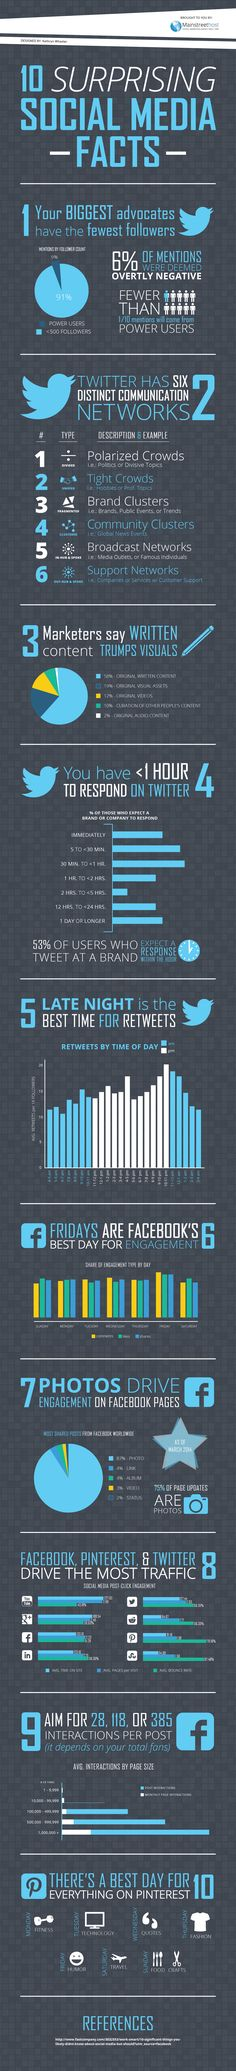 10 Surprising Social Media Facts.